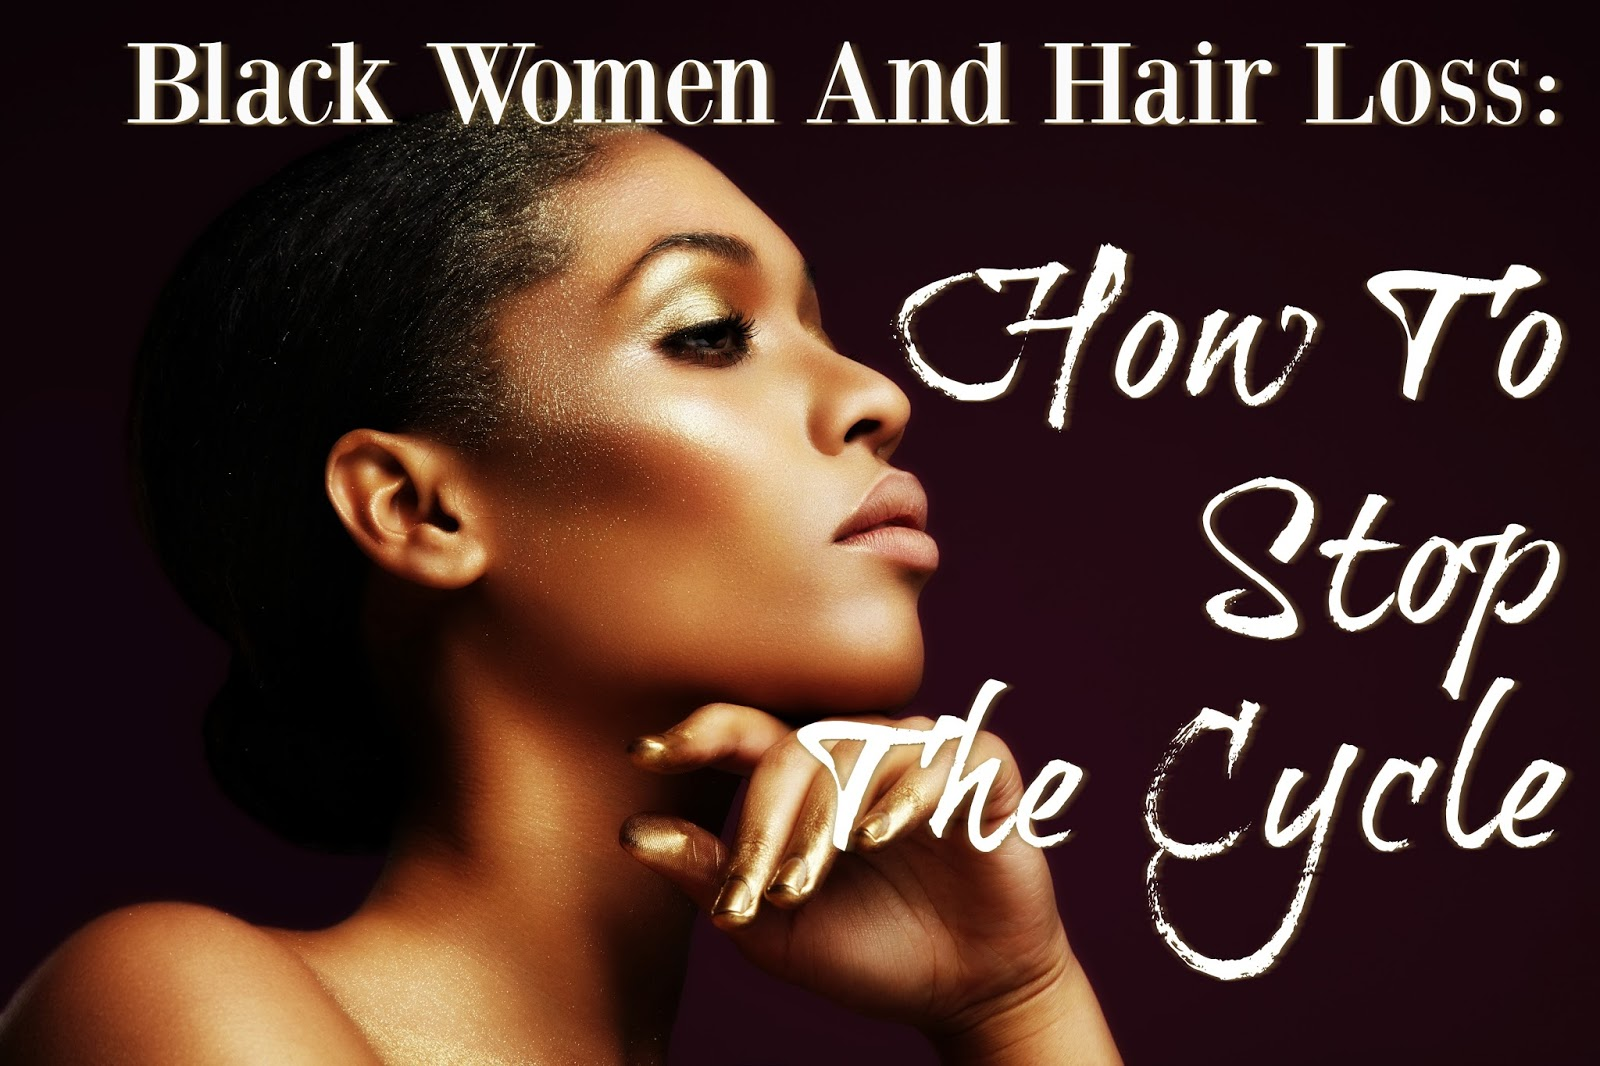 Black Women And Hair Loss: How To Stop The Cycle